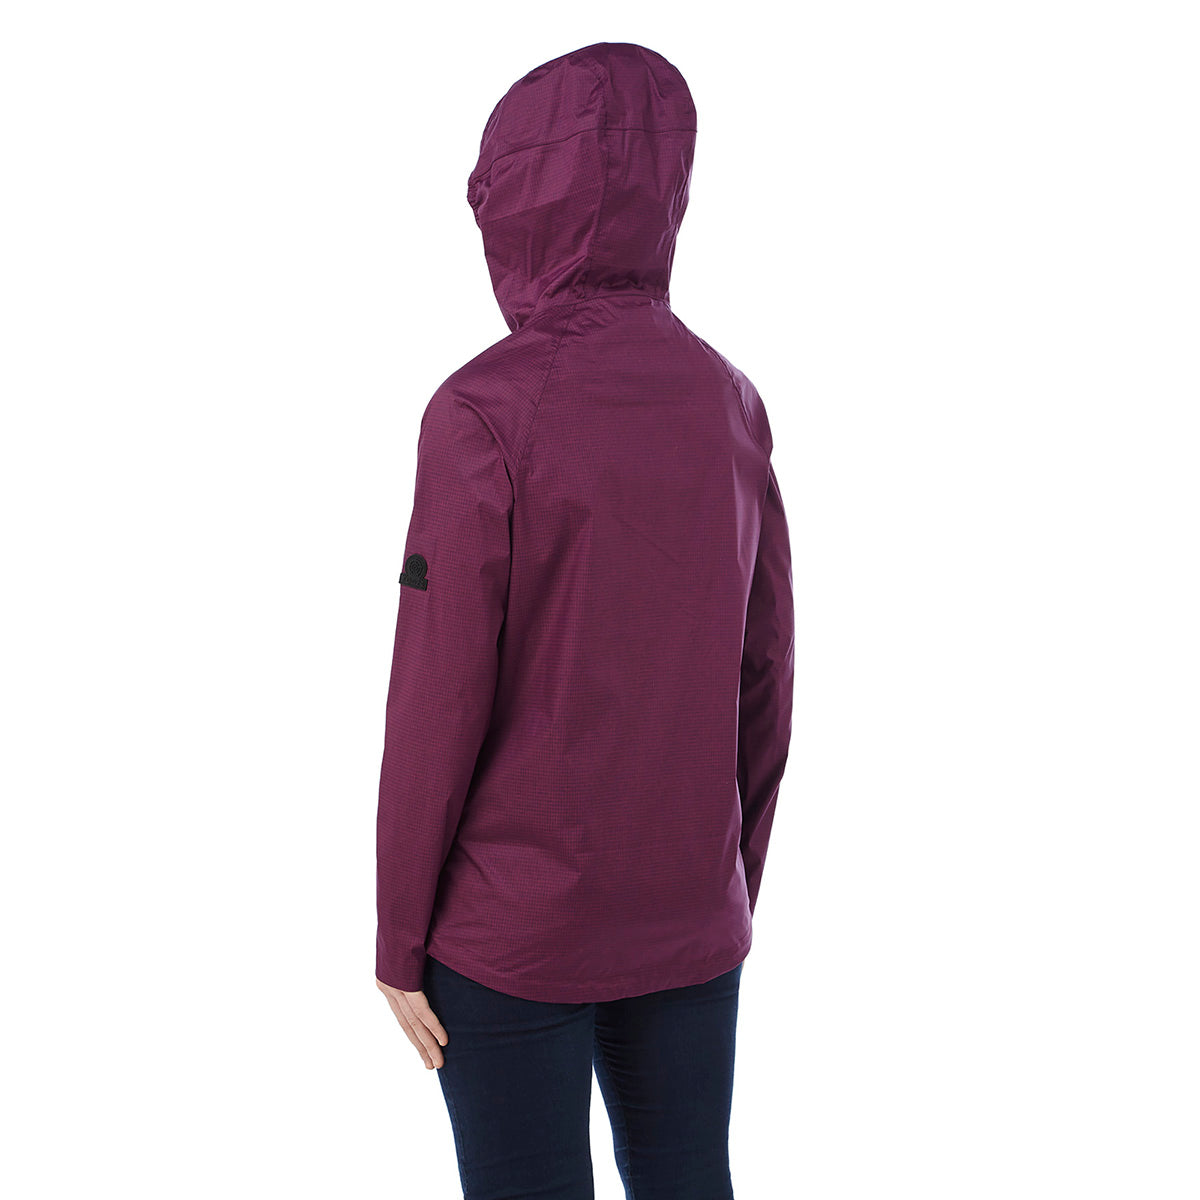 Vettel Womens Performance Waterproof Jacket - Dark Purple image 4